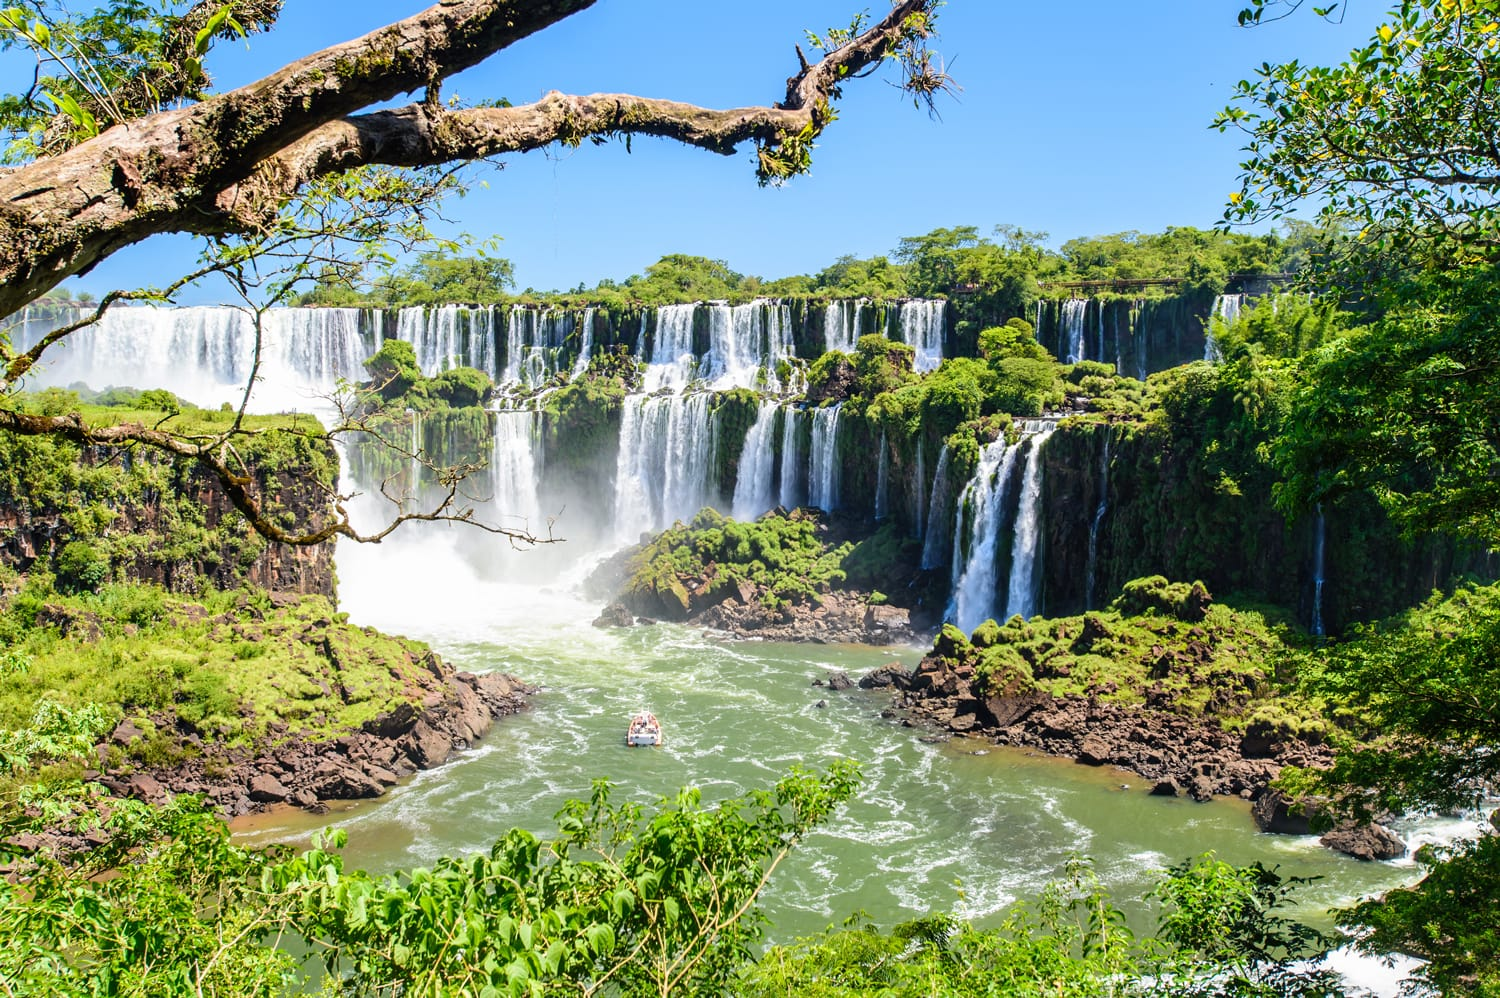 Iguazu National Park in Argentina